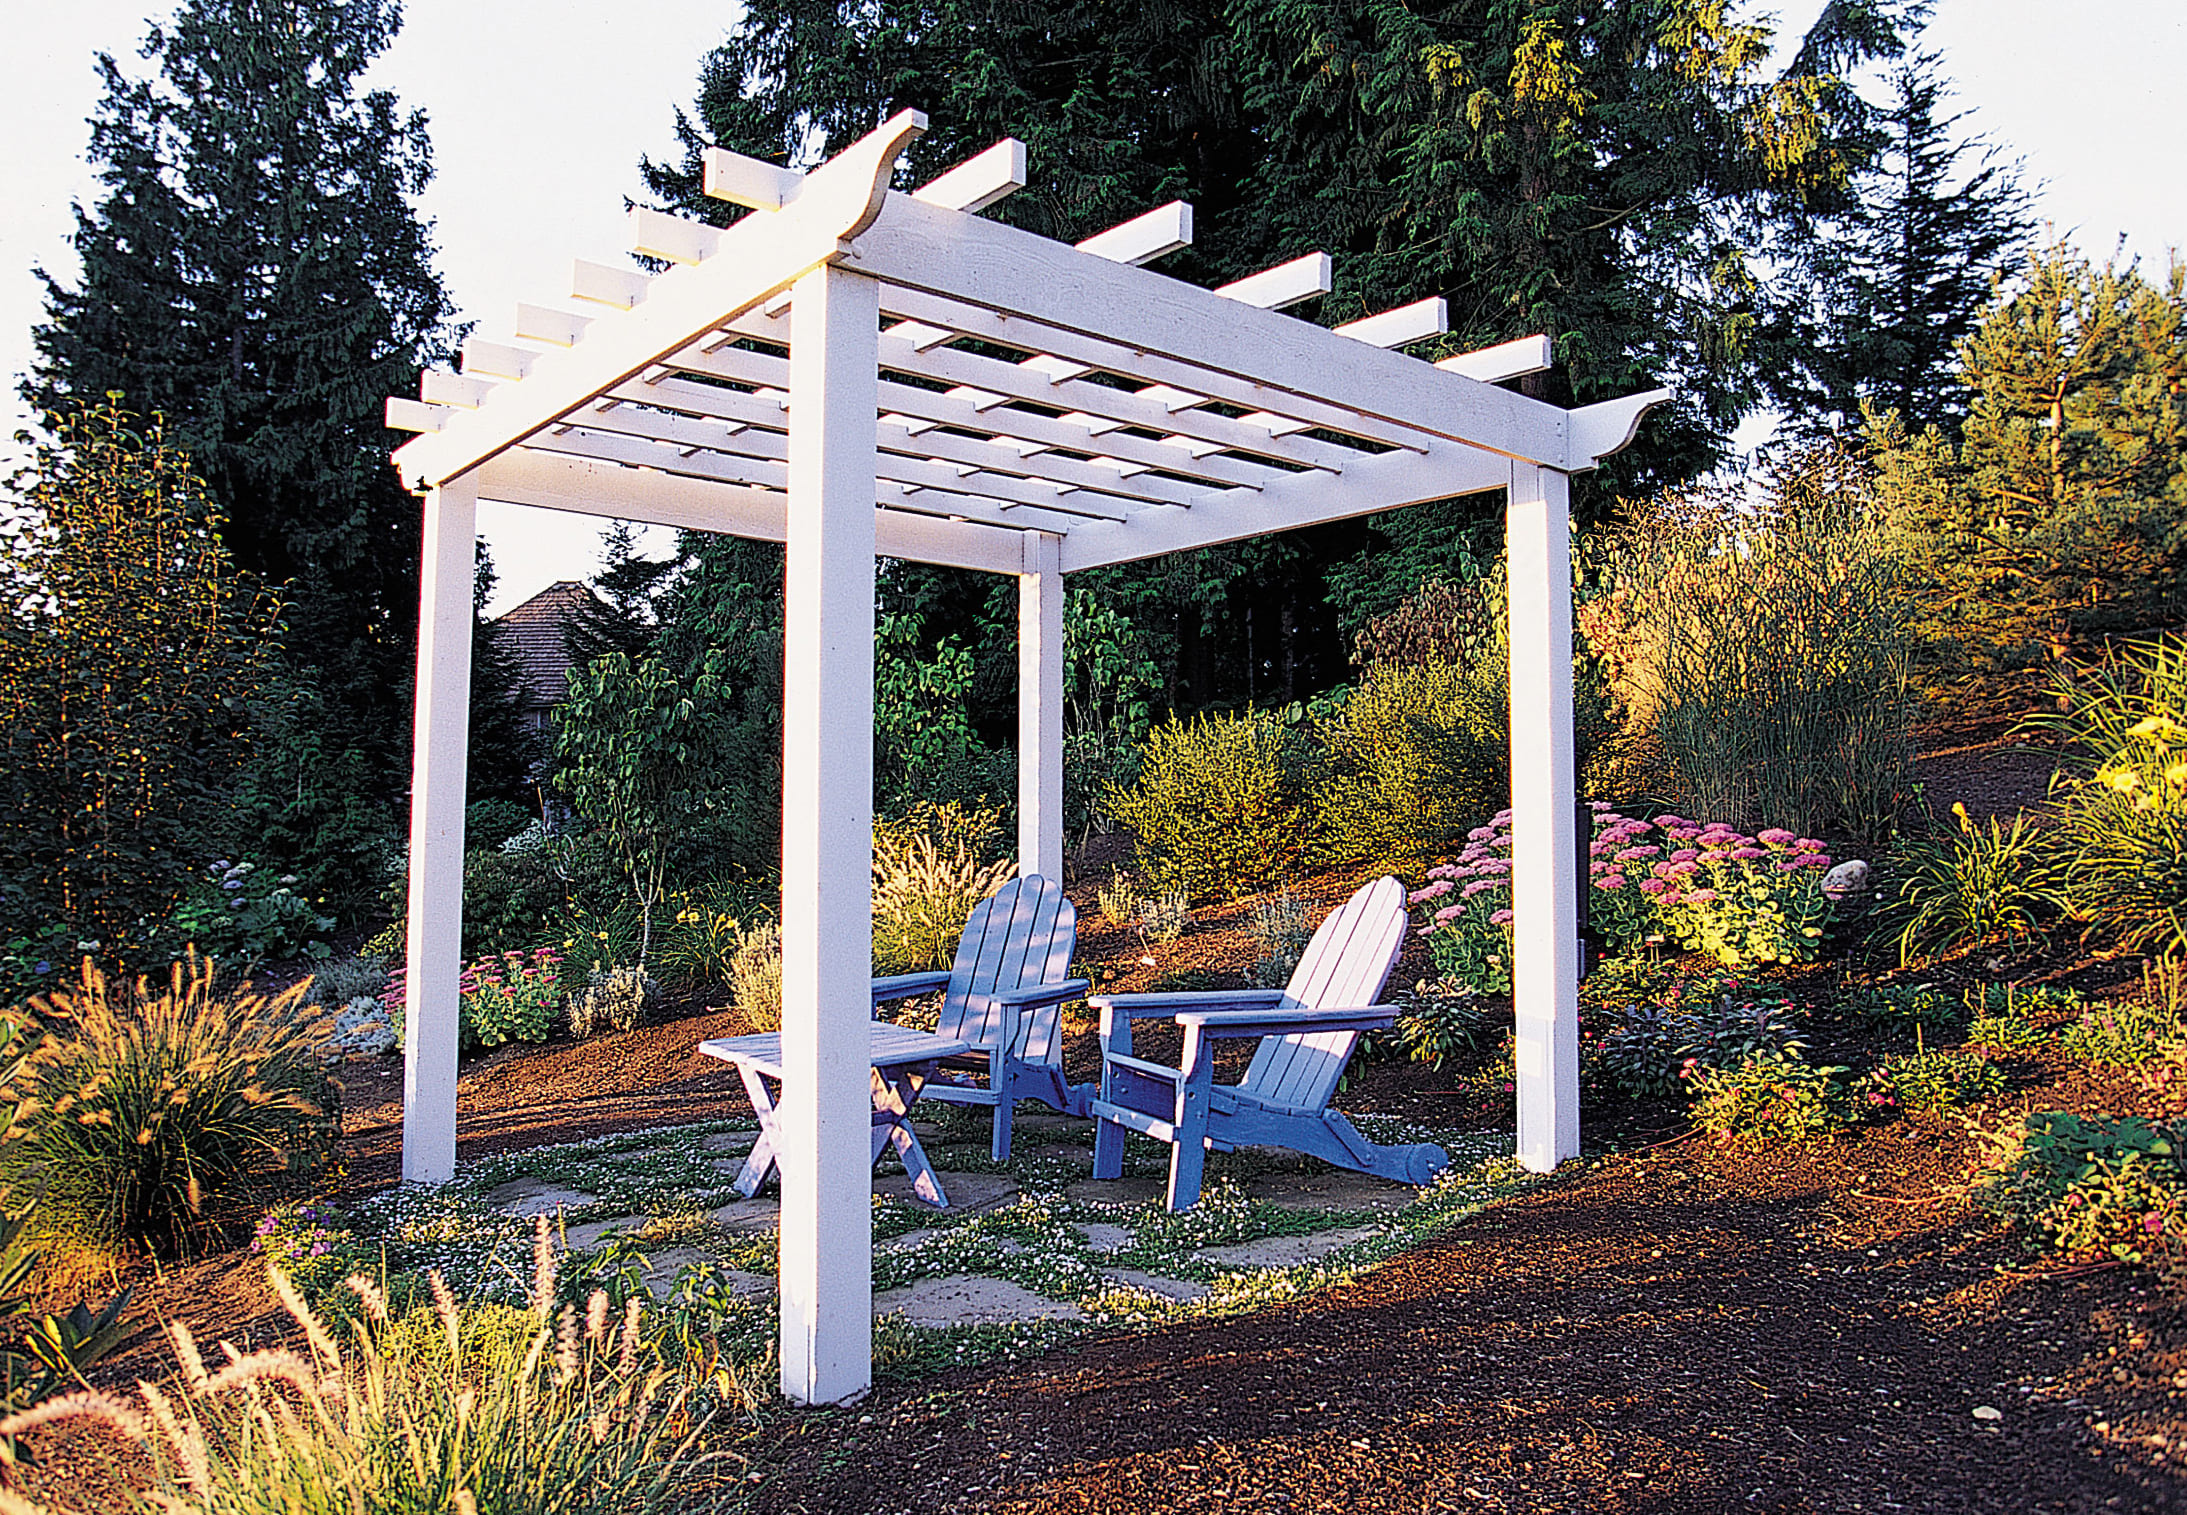 Simphome.com how to make a great garden trellis or arbor sunset magazine for garden trellis ideas